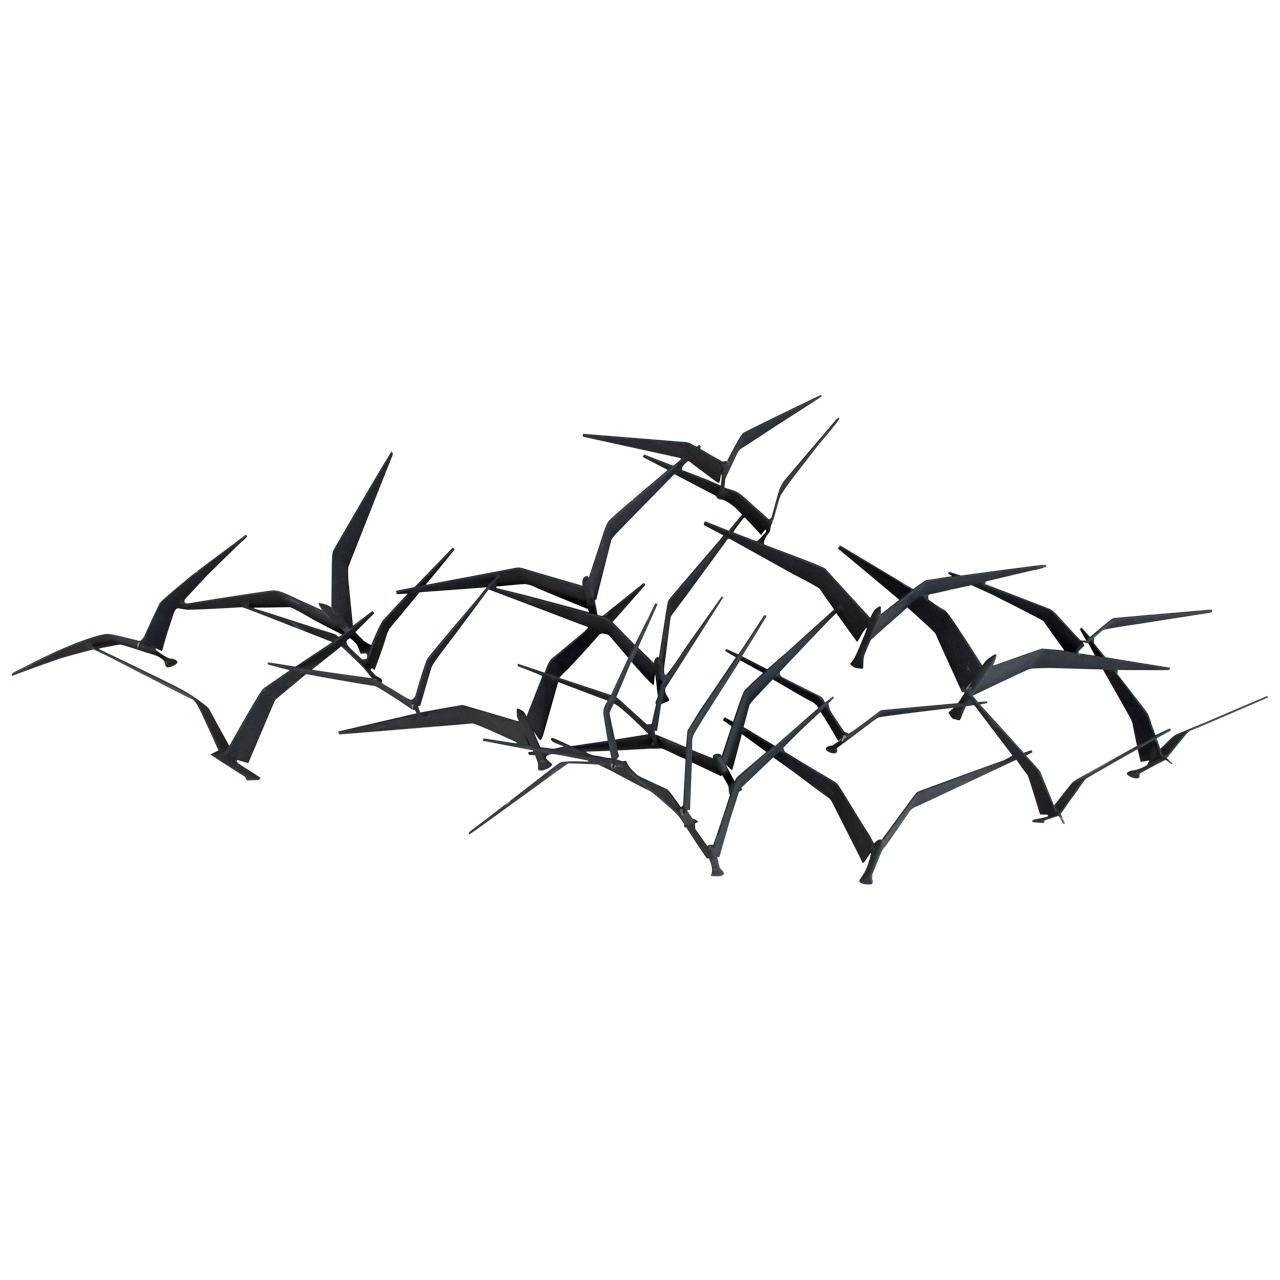 Birds In Flight Metal Wall Artcurtis Jere At 1stdibs With Latest Flying Birds Metal Wall Art (View 1 of 25)